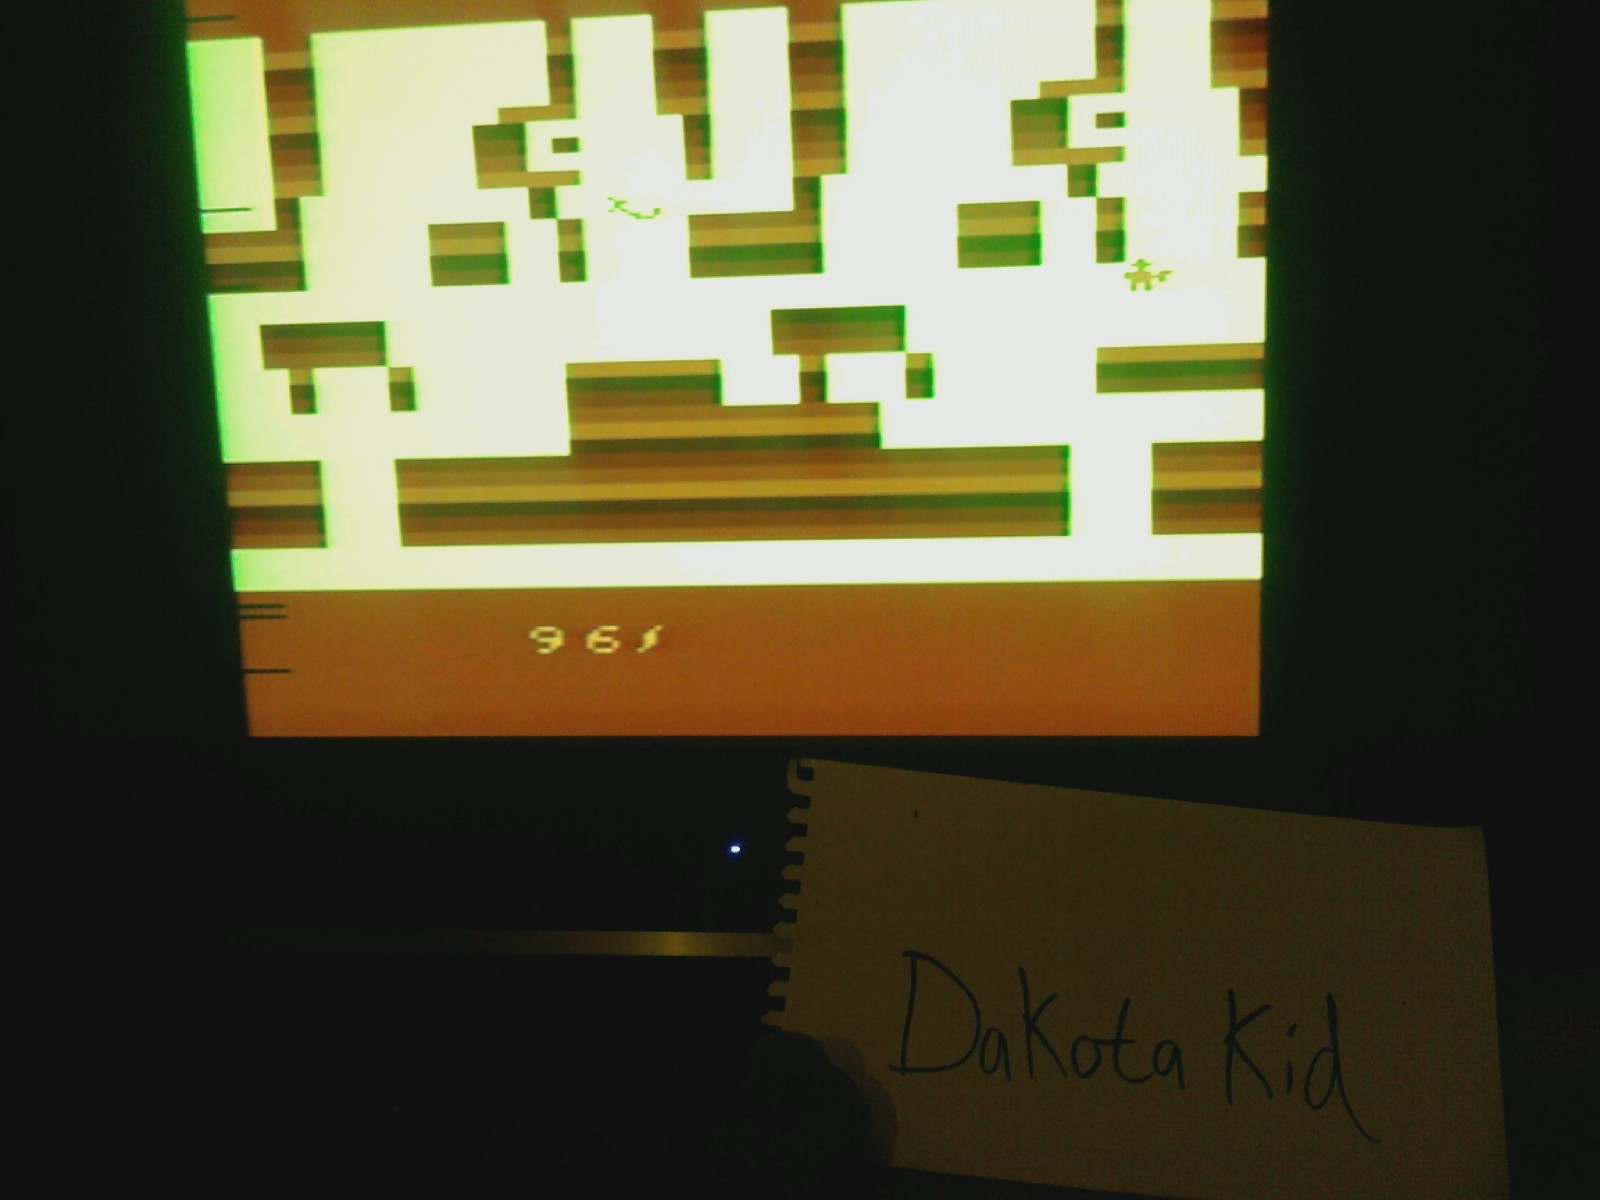 DakotaKid: Tutankham (Atari 2600) 961 points on 2014-05-03 21:29:33